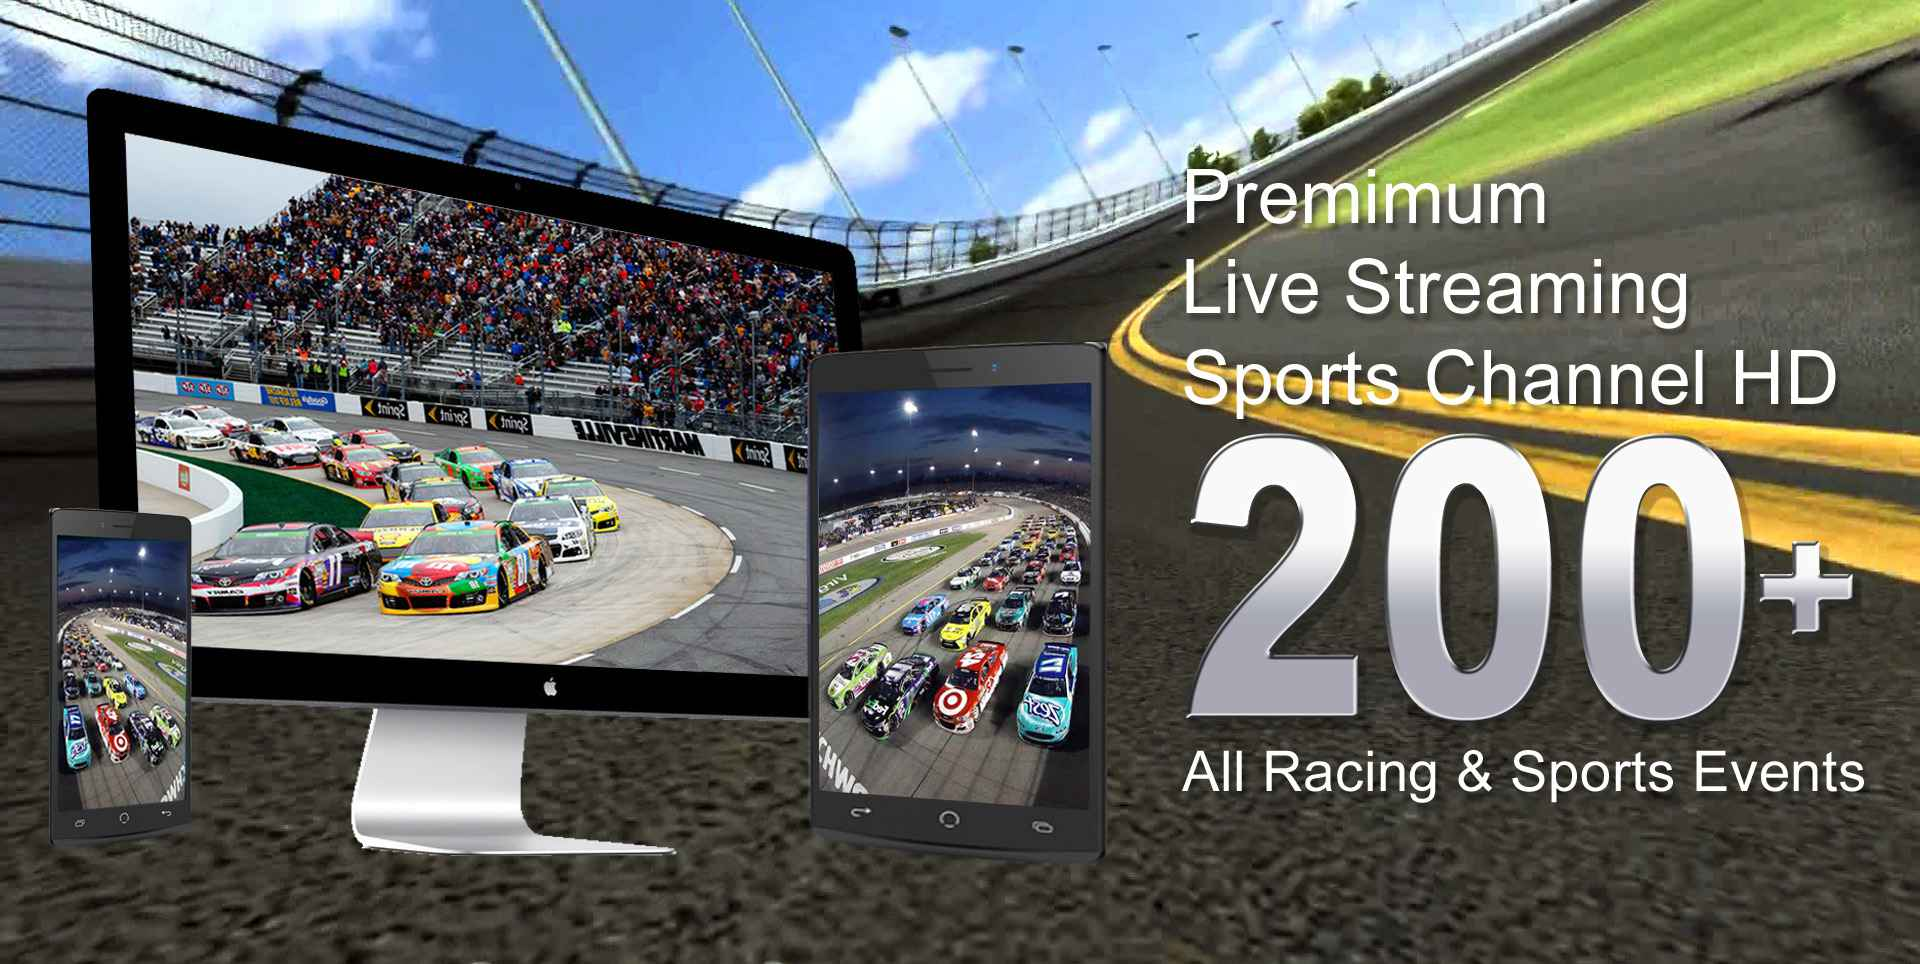 2015-great-clips-250-live-streaming